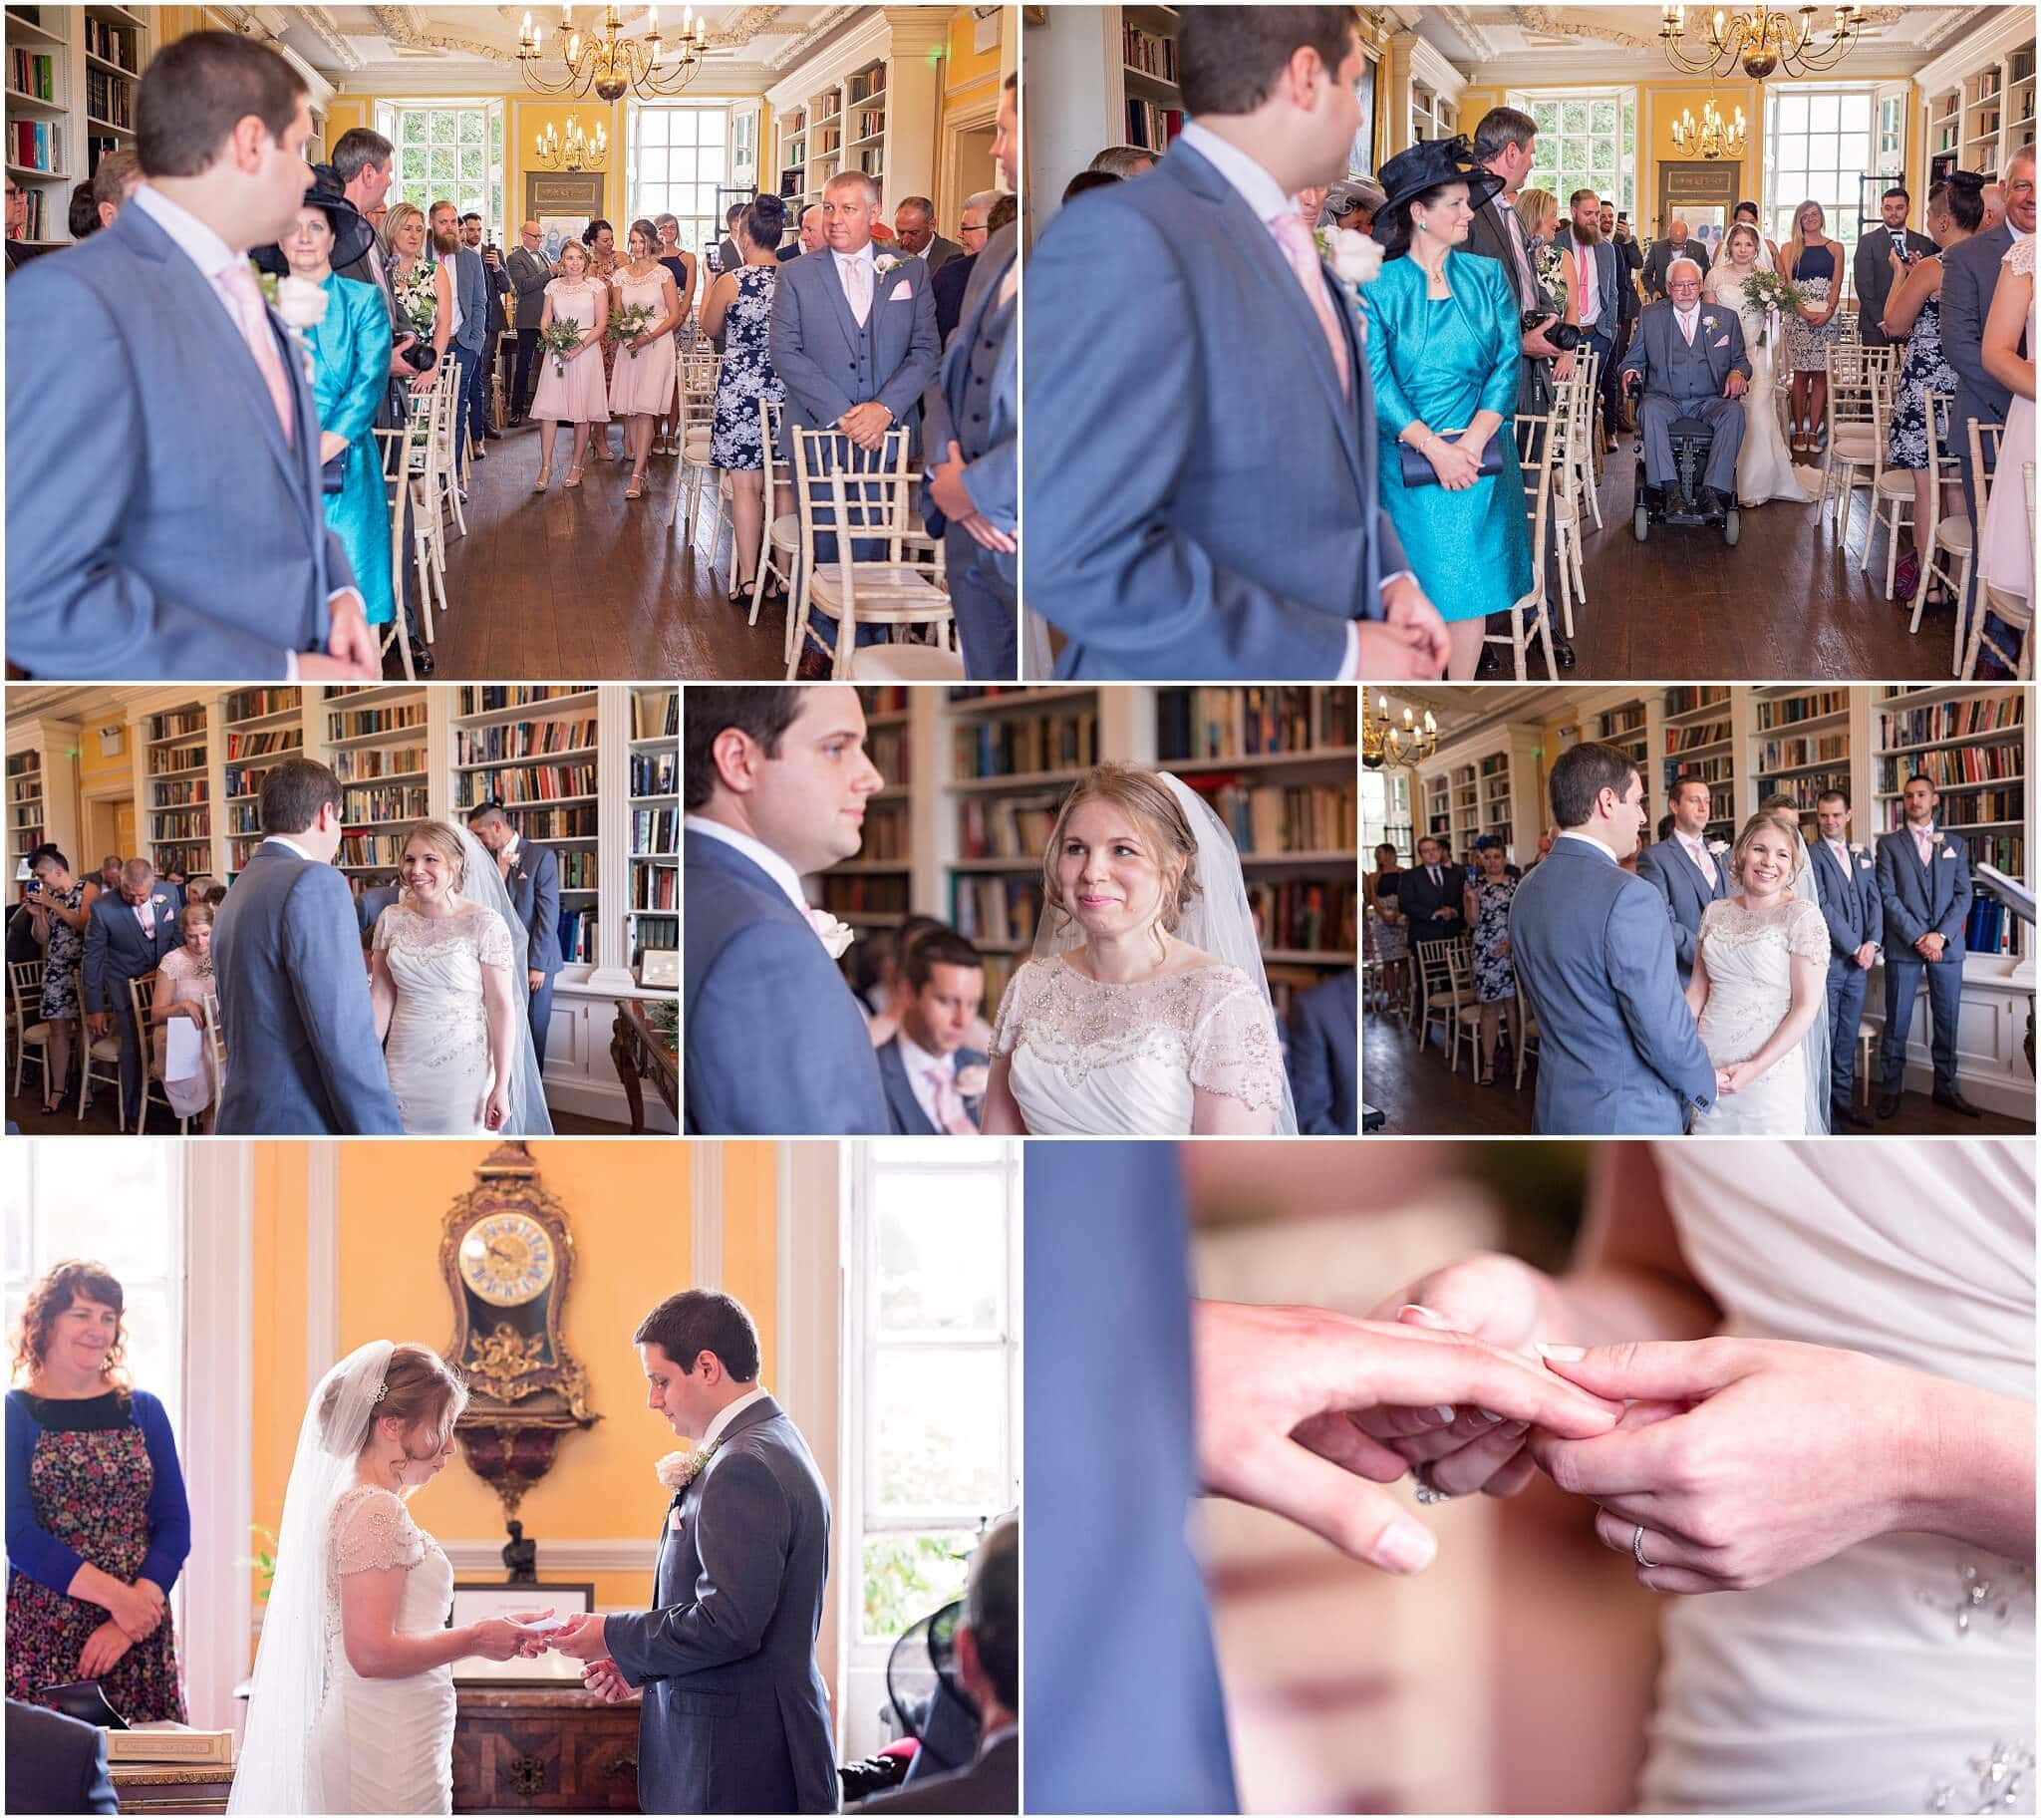 Wedding in the library at Anstey Hall